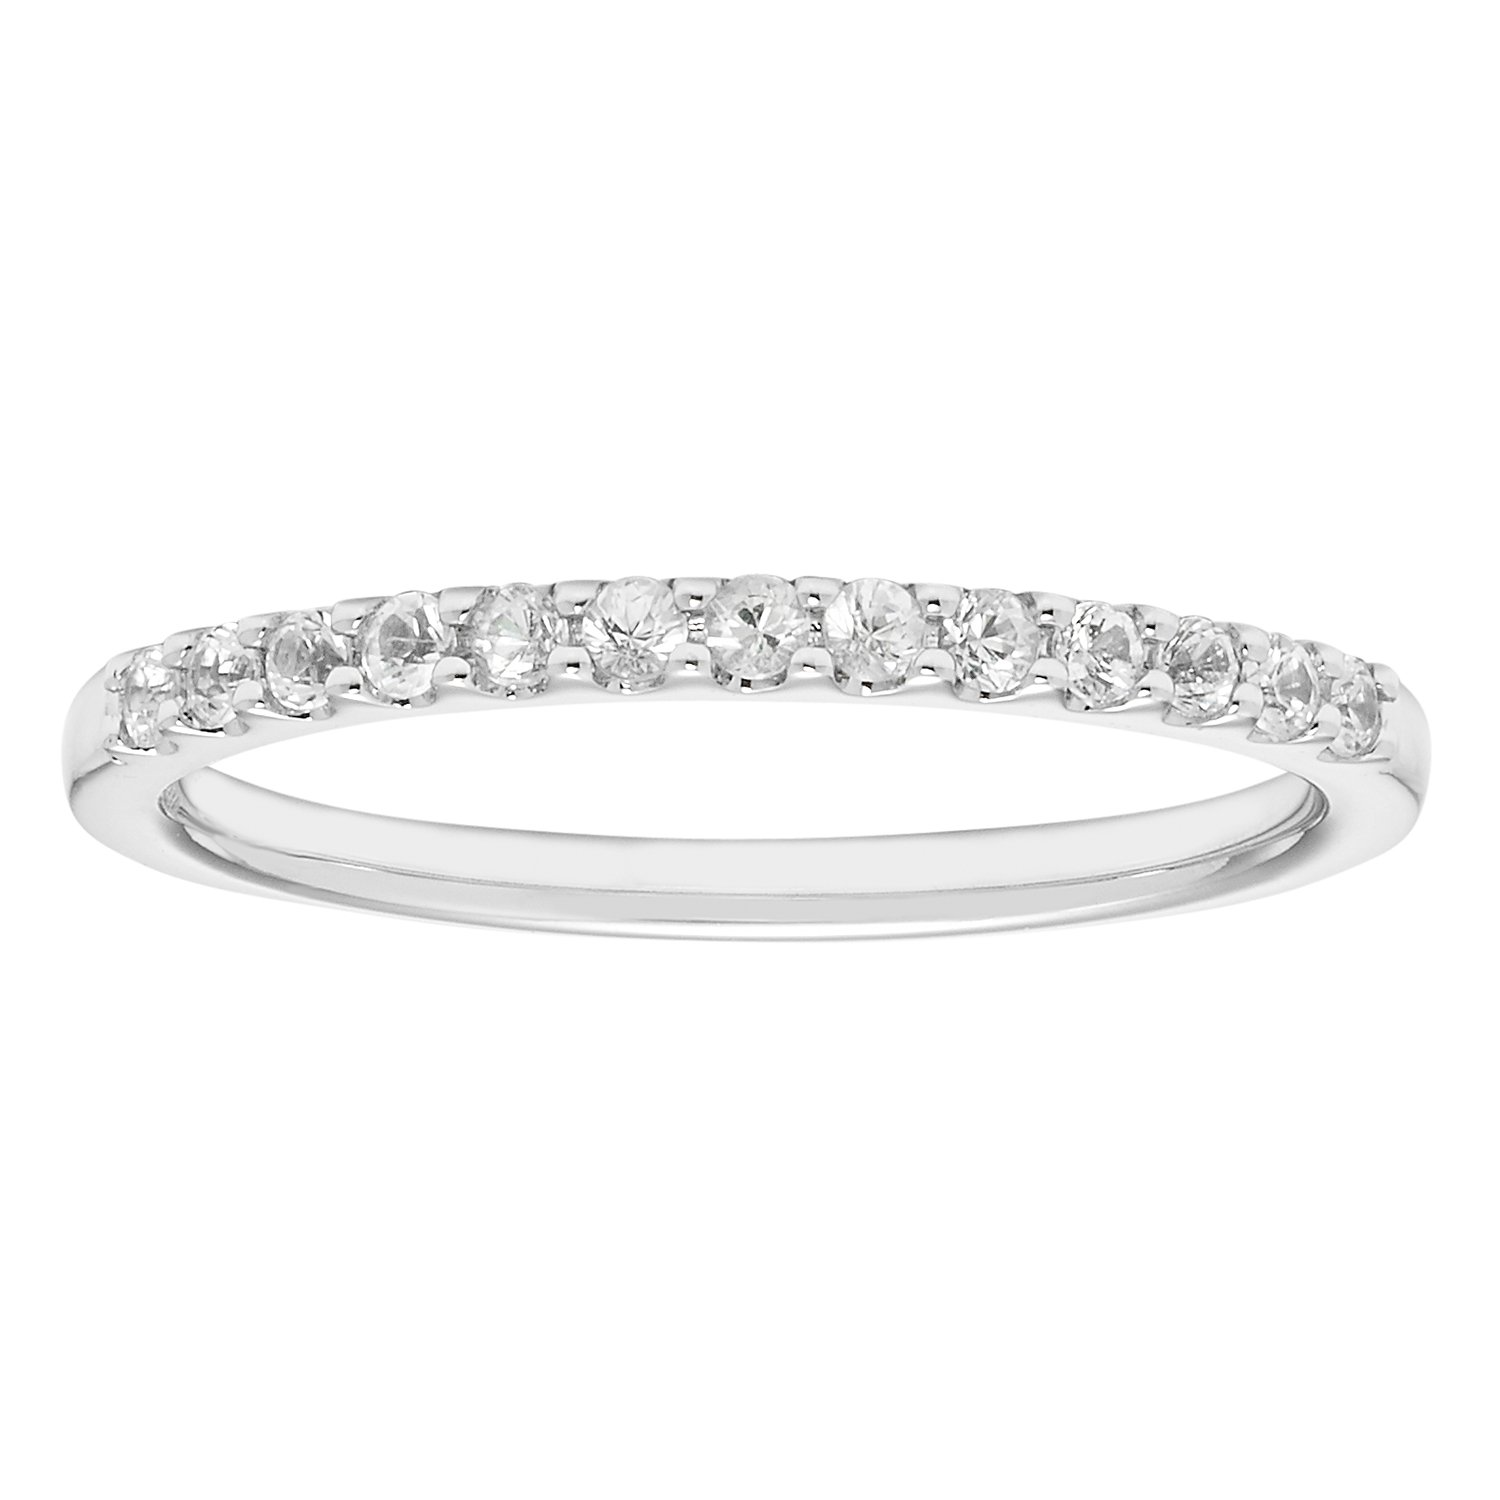 14K White Gold 1.04 Tgw. White Sapphire April Birthstone Stackable 2MM Band Ring